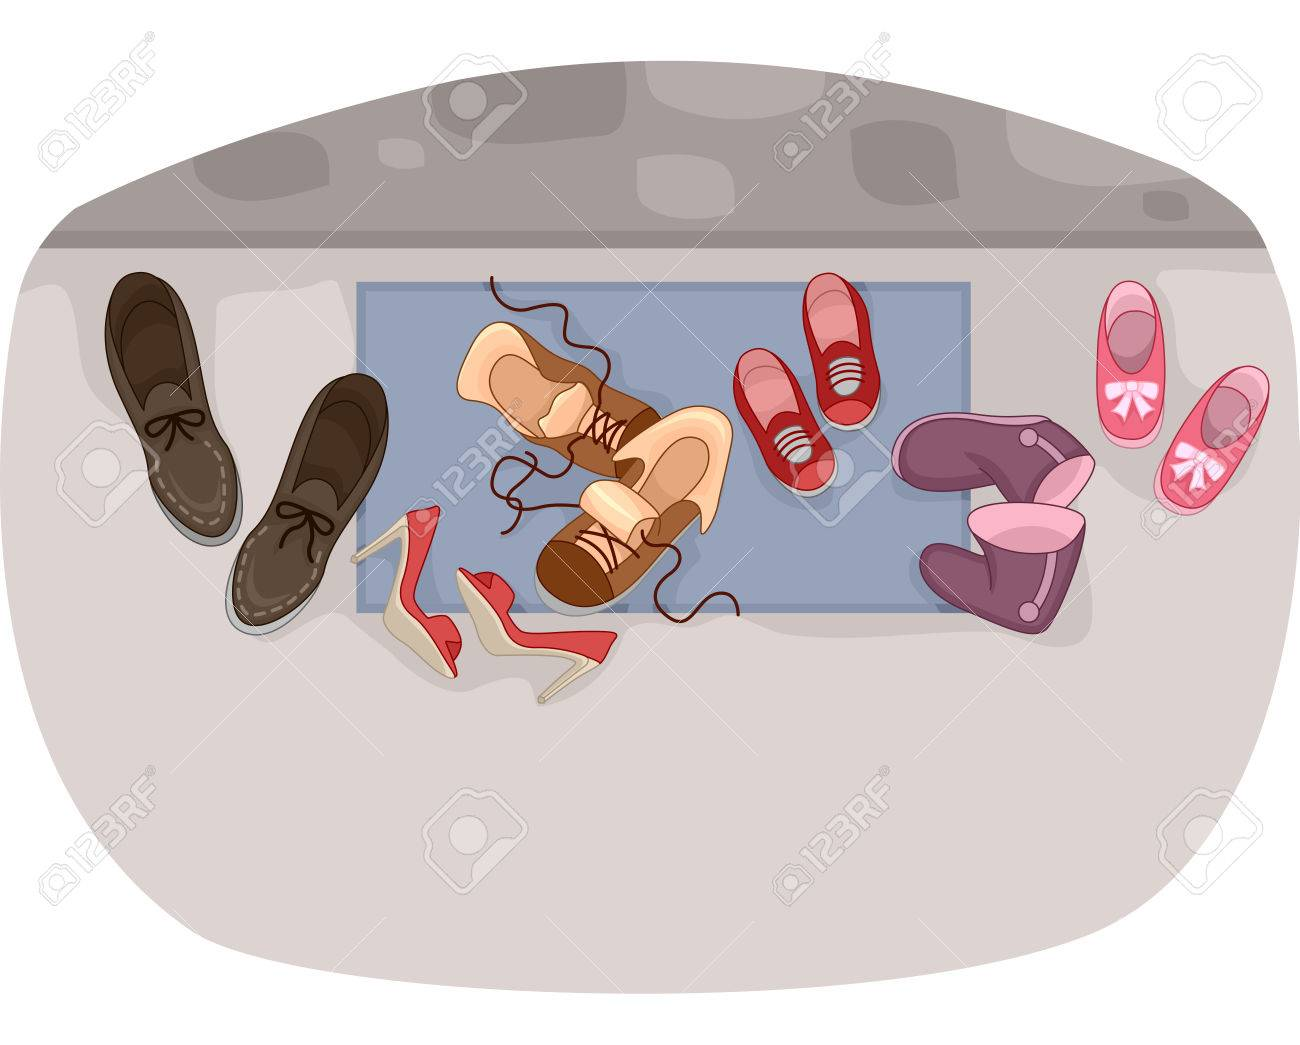 Illustration   Illustration Of Family Shoes By The Front Door